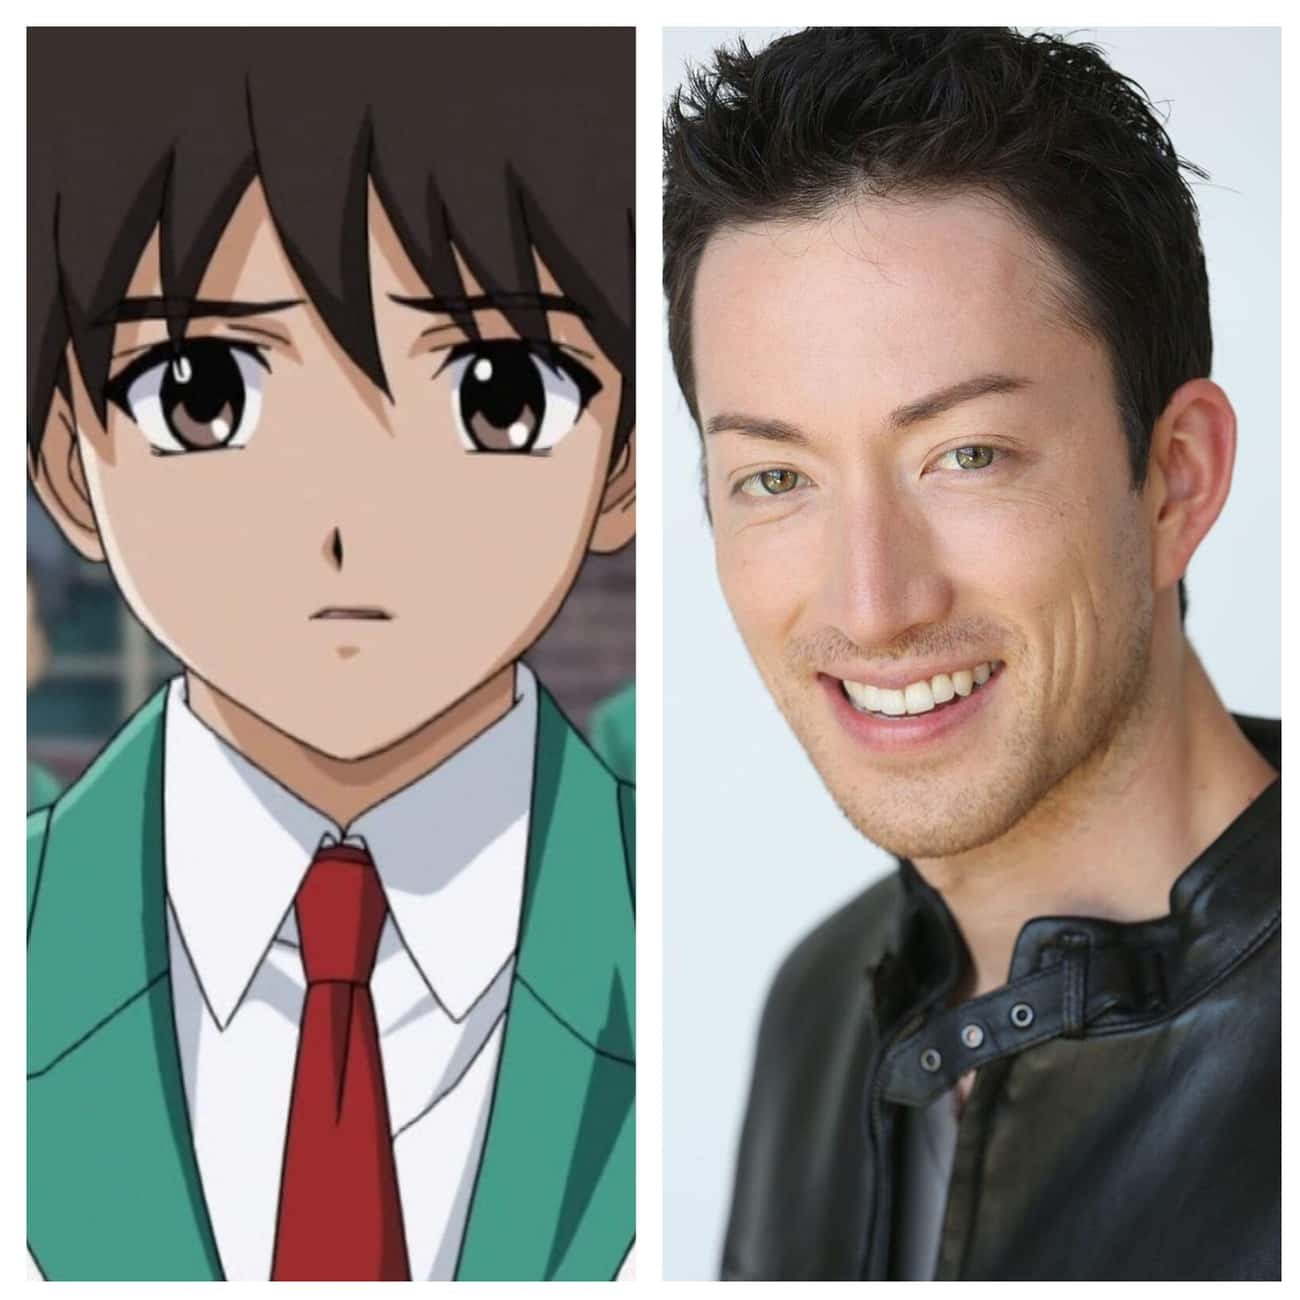 Todd Haberkorn is listed (or ranked) 3 on the list The 15 Greatest English Anime Voice Actors Of All Time